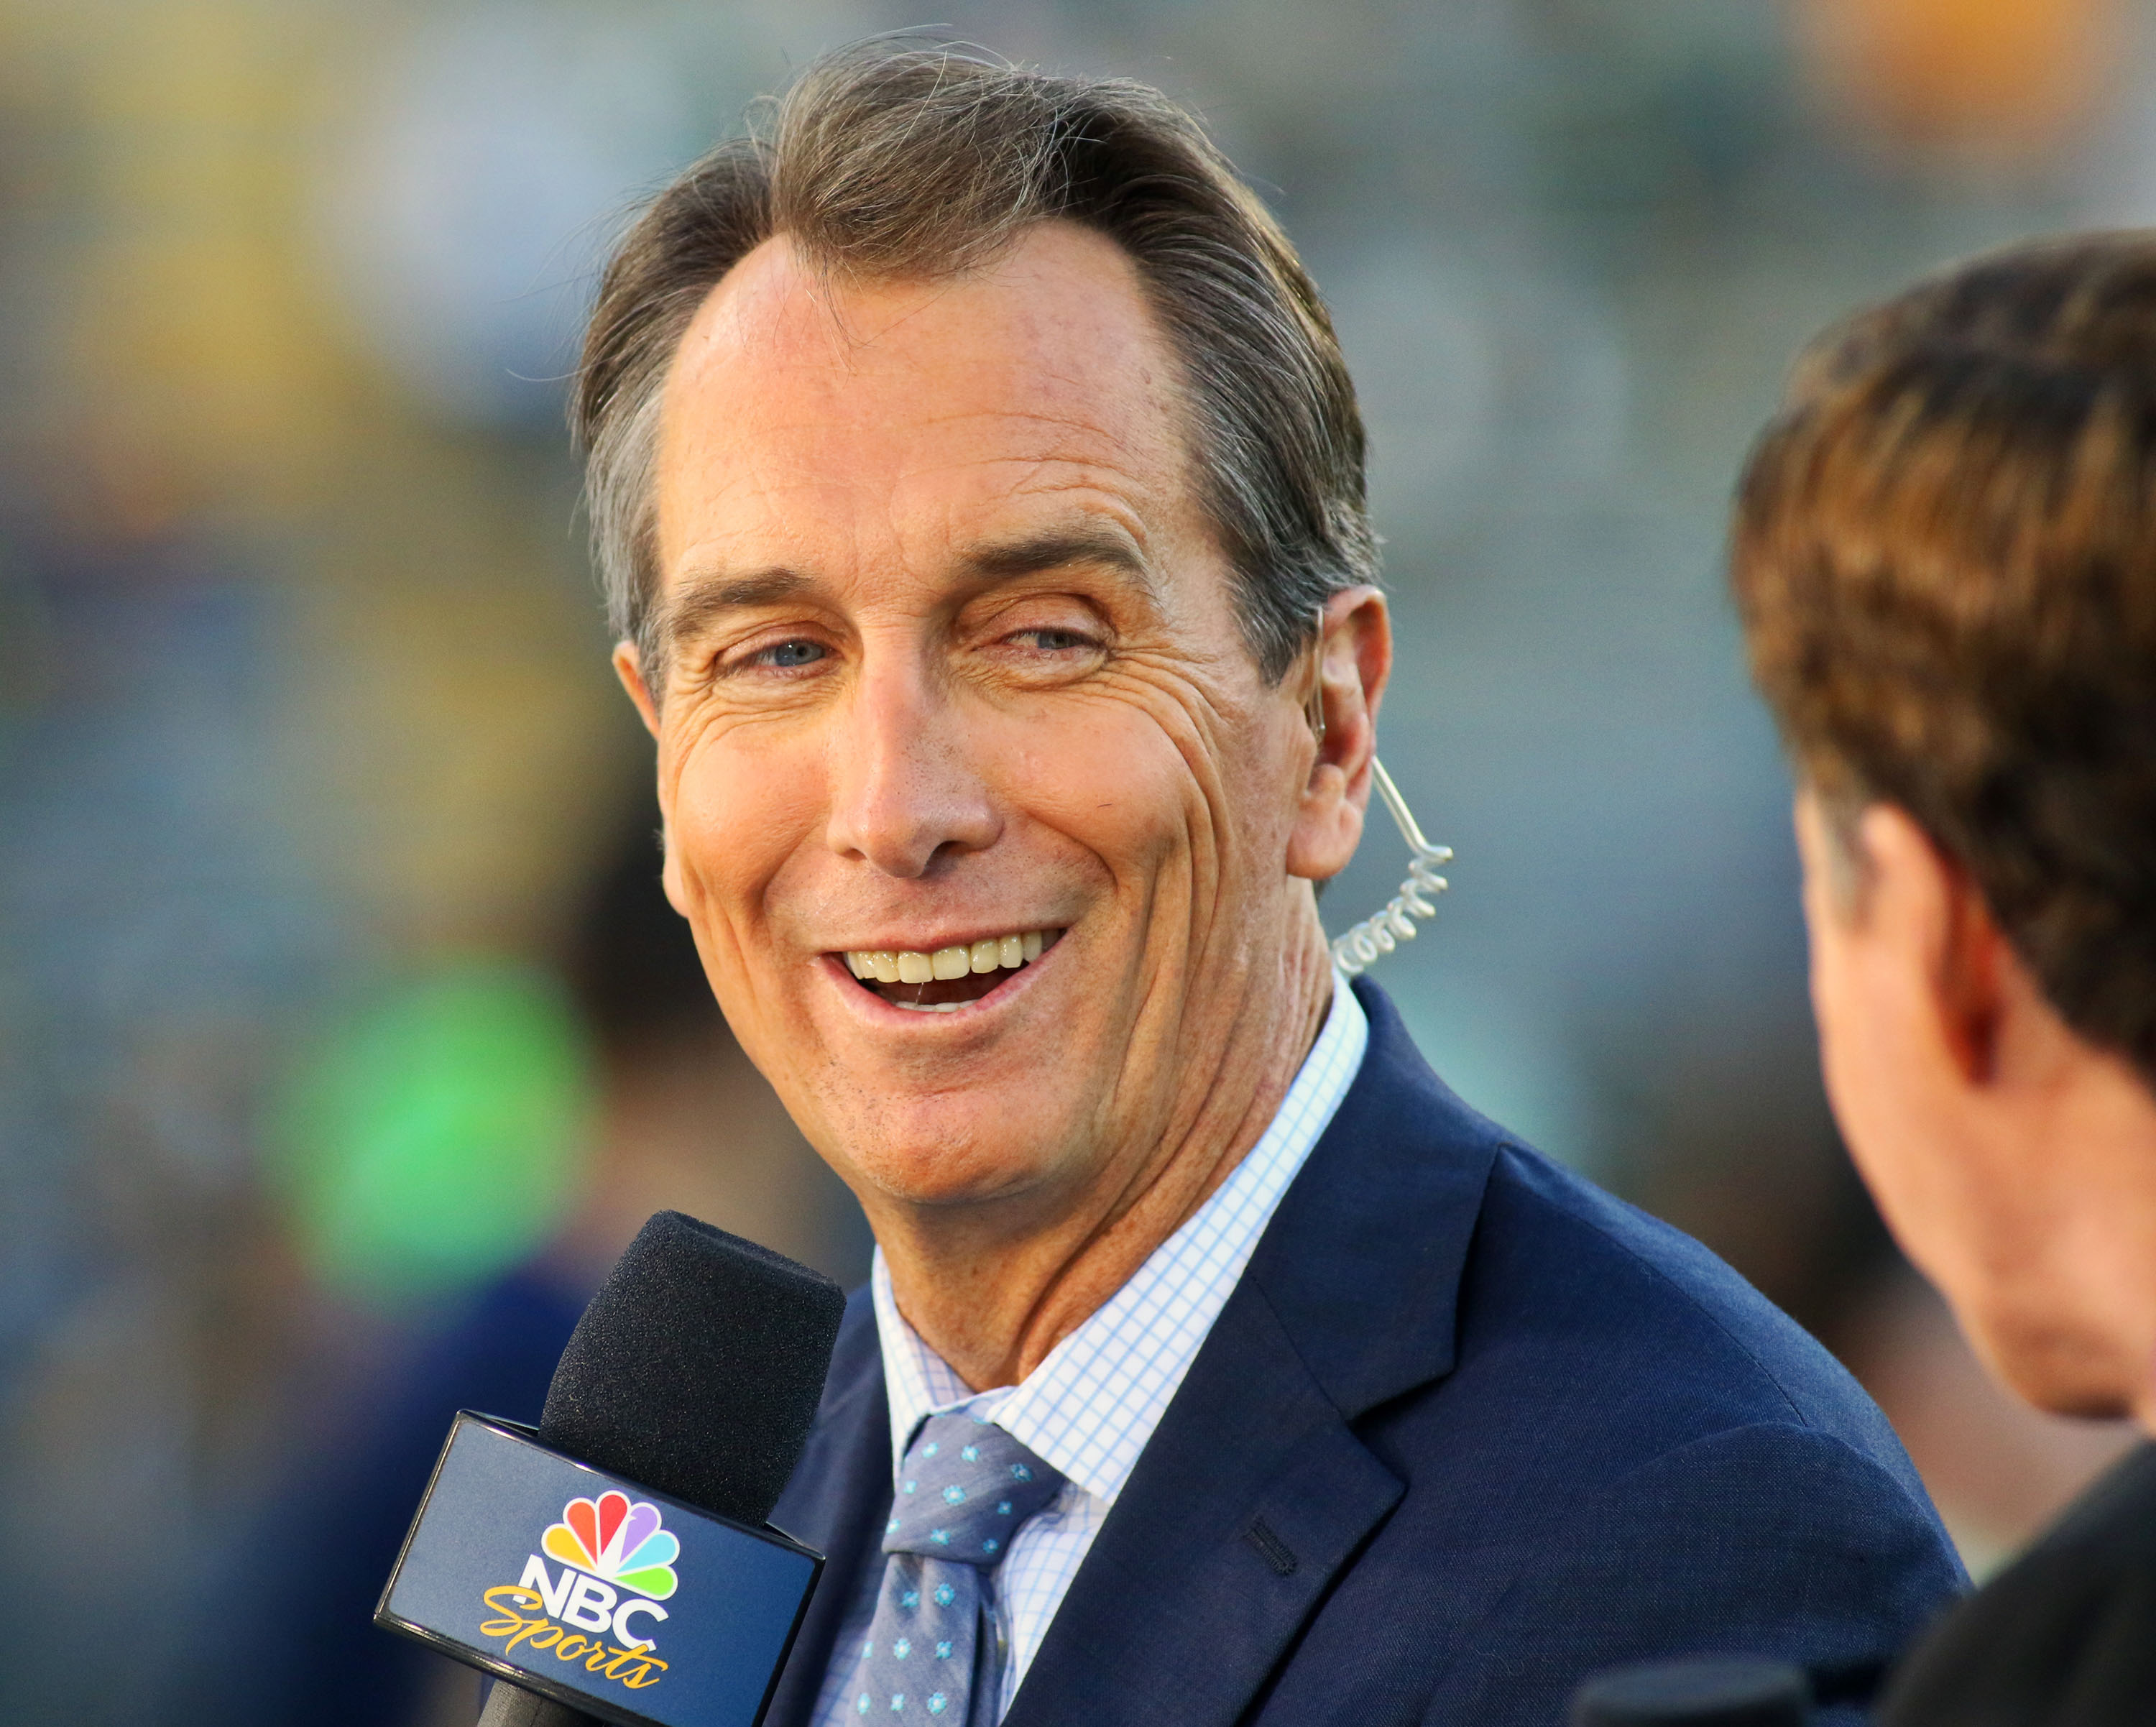 Cris Collinsworth Fires Back At Criticism From Bill Simmons 2